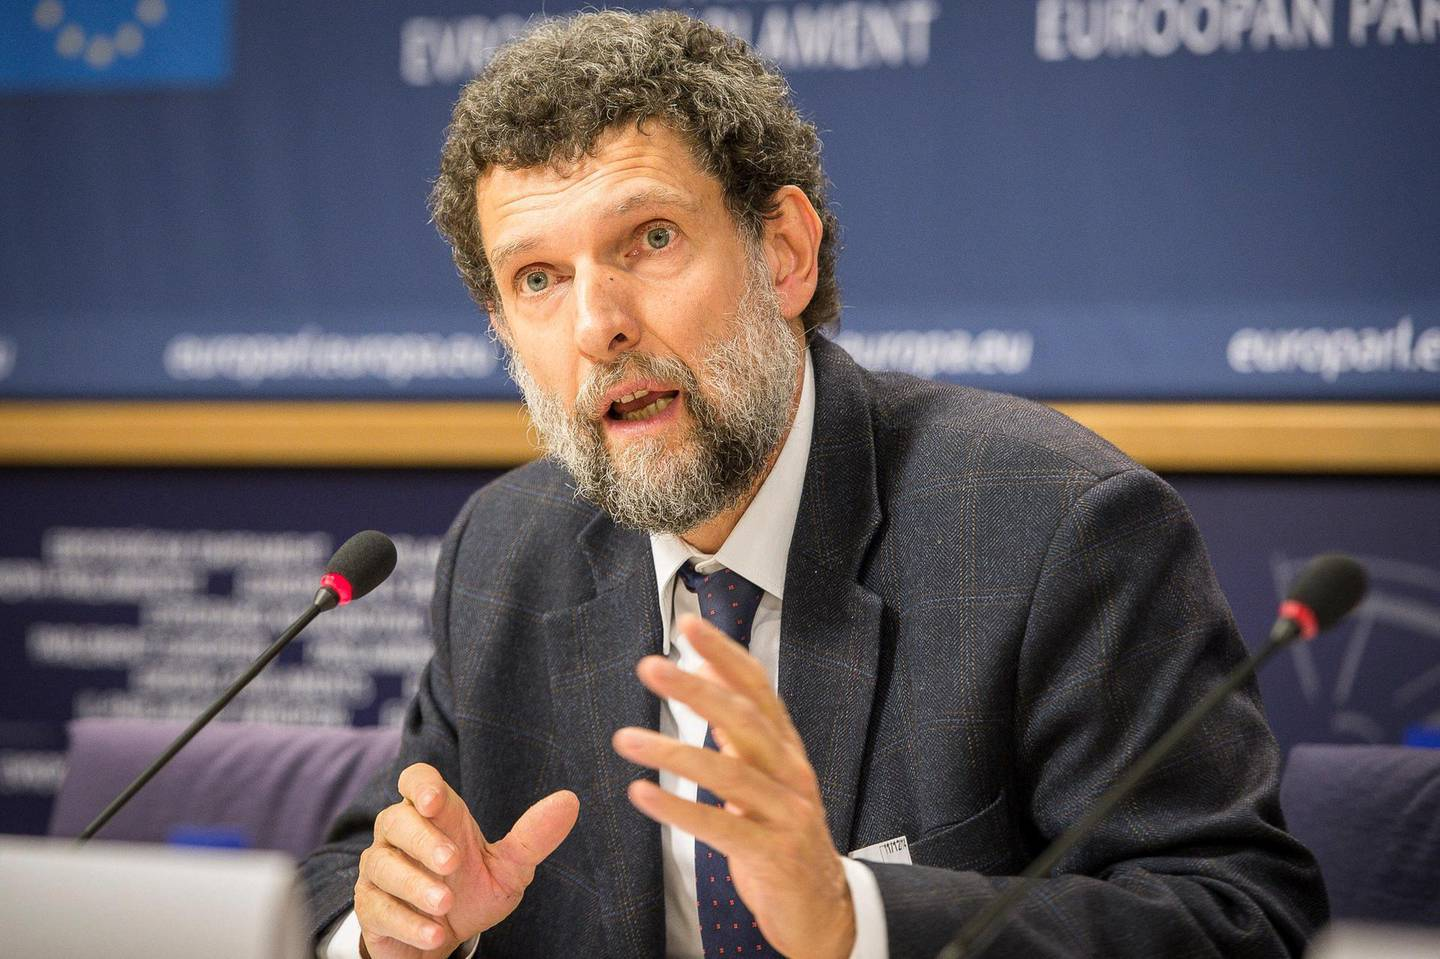 ECBXBH Brussels, Belgium. 11th December, 2014. Osman Kavala, Chair of the cultural organisation Anadolu Kultur in Turkey holds press conference at European Parliament headquarters in Brussels, Belgium on 11.12.2014 International Peace and Reconciliation Initiative issued the Report on Turkey-Kurds Peace Process. Credit:  ZUMA Press, Inc./Alamy Live News